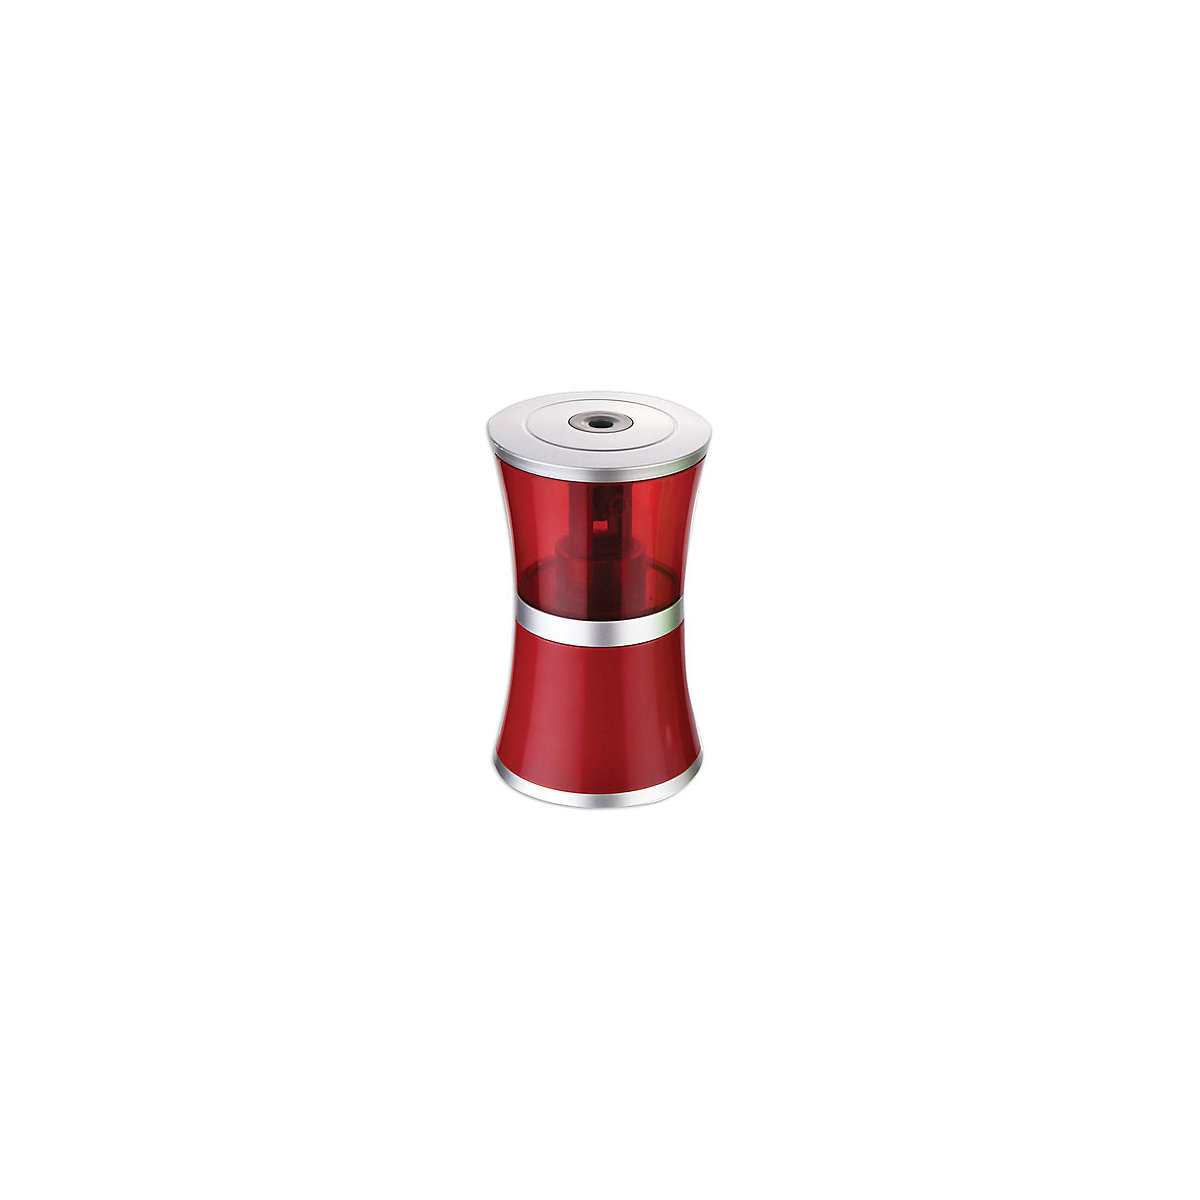 BRAUBERG Pencil Sharpeners 10971281 stationery office school supplies writing goods Office red MTpromo fountain pen shark style duke 911 2 colors to choose office and school stationery free shipping